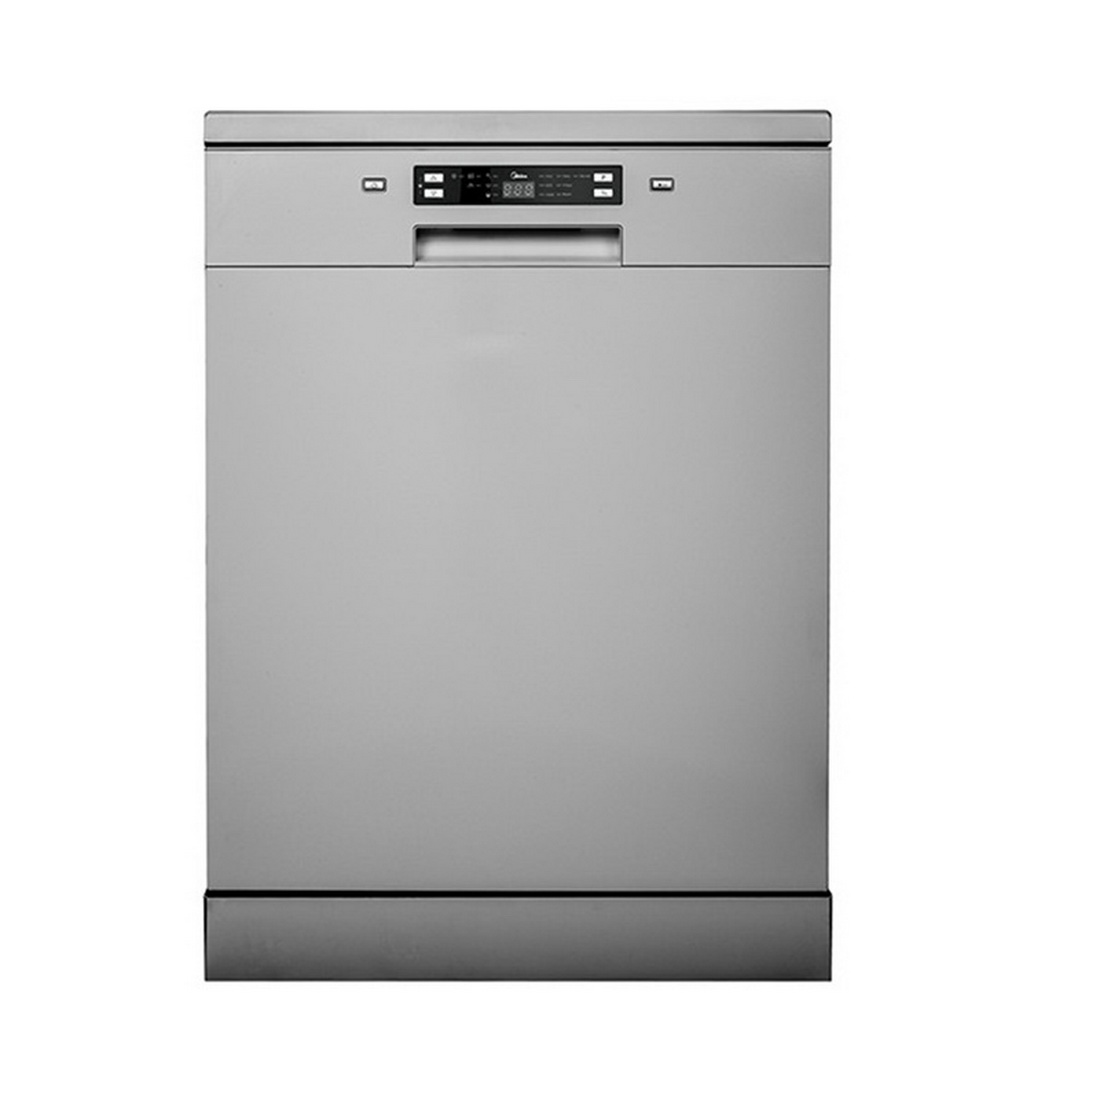 Freestanding Dishwasher with Cutler Basket 14 Place Setting Stainless Steel JHDW142FS